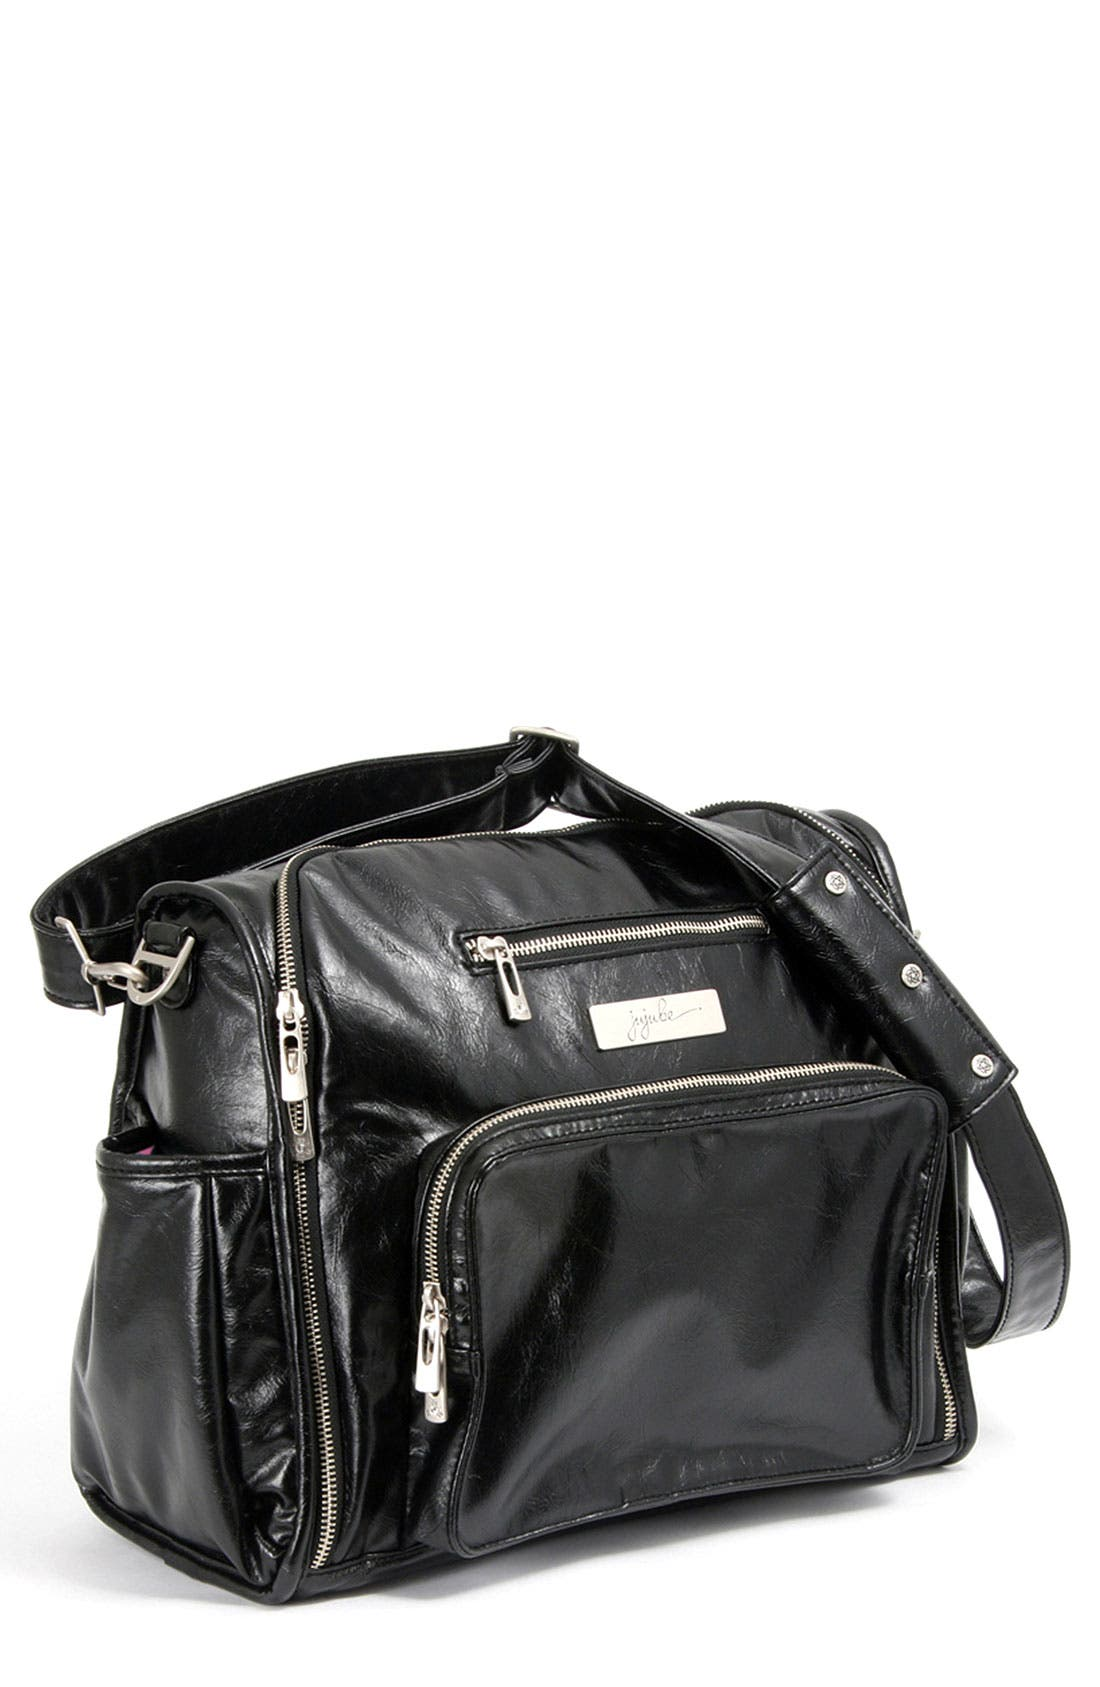 Main Image - Ju-Ju-Be 'Be Fabulous' Earth Leather™ Faux Leather Diaper Bag